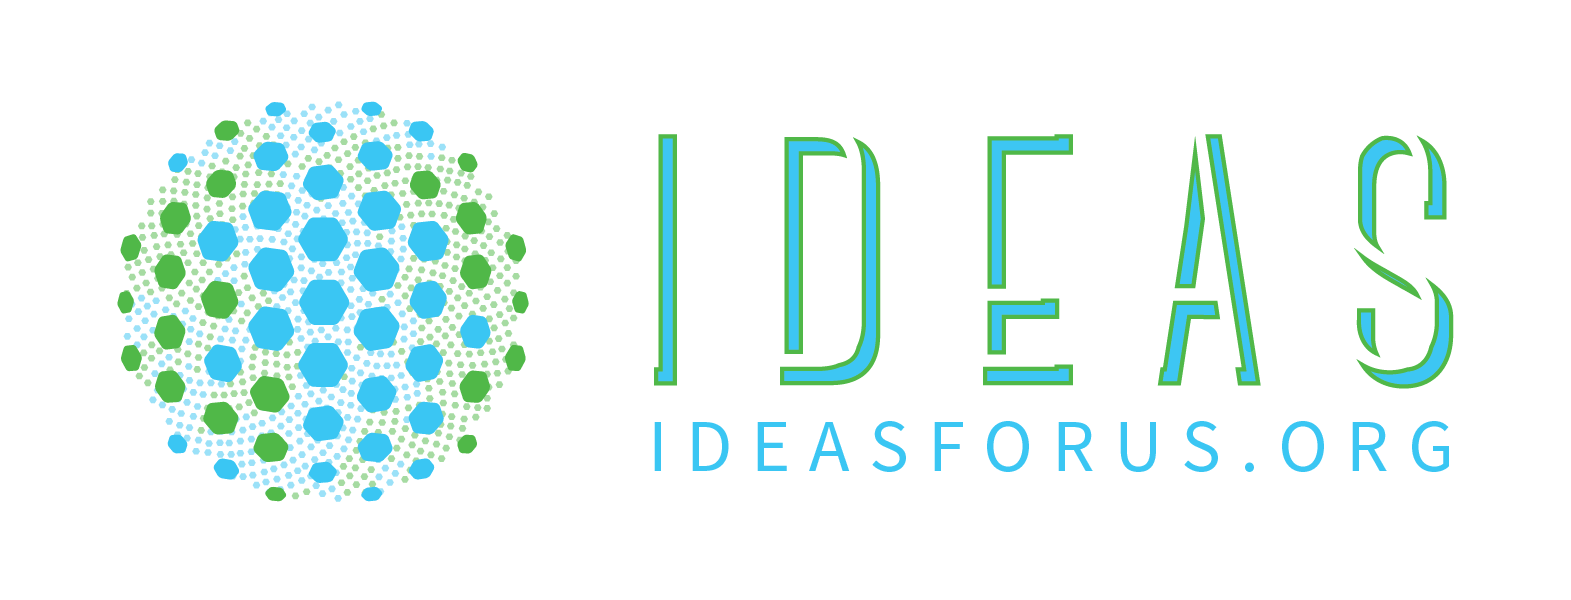 IDEAS FOR US IS A 501(C)(3) NON-PROFIT ORGANIZATION, ACCREDITED BY THE UNITED NATIONS, WORKING TO DEVELOP, FUND, AND SCALE SOLUTIONS TO THE WORLD'S MOST PRESSING ENVIRONMENTAL AND SOCIAL CHALLENGES. OUR ORGANIZATION IS DEDICATED TO EDUCATING, ENGAGING AND EMPOWERING PEOPLE TO CREATE A BETTER AND MORE SUSTAINABLE WORLD.